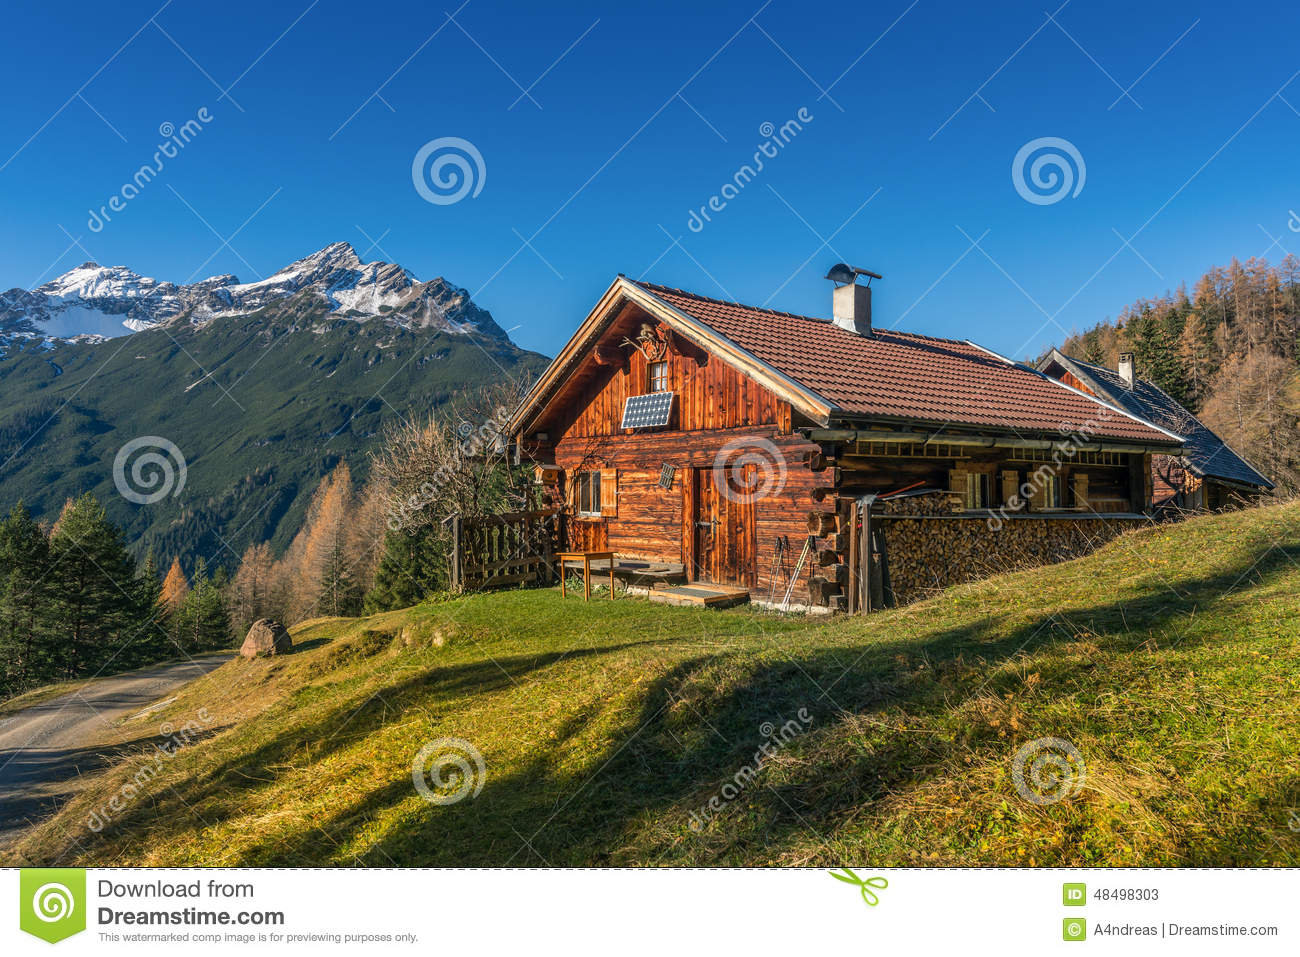 Old Wooden Hut Cabin In Mountain Alps Stock Photo Image 48498303